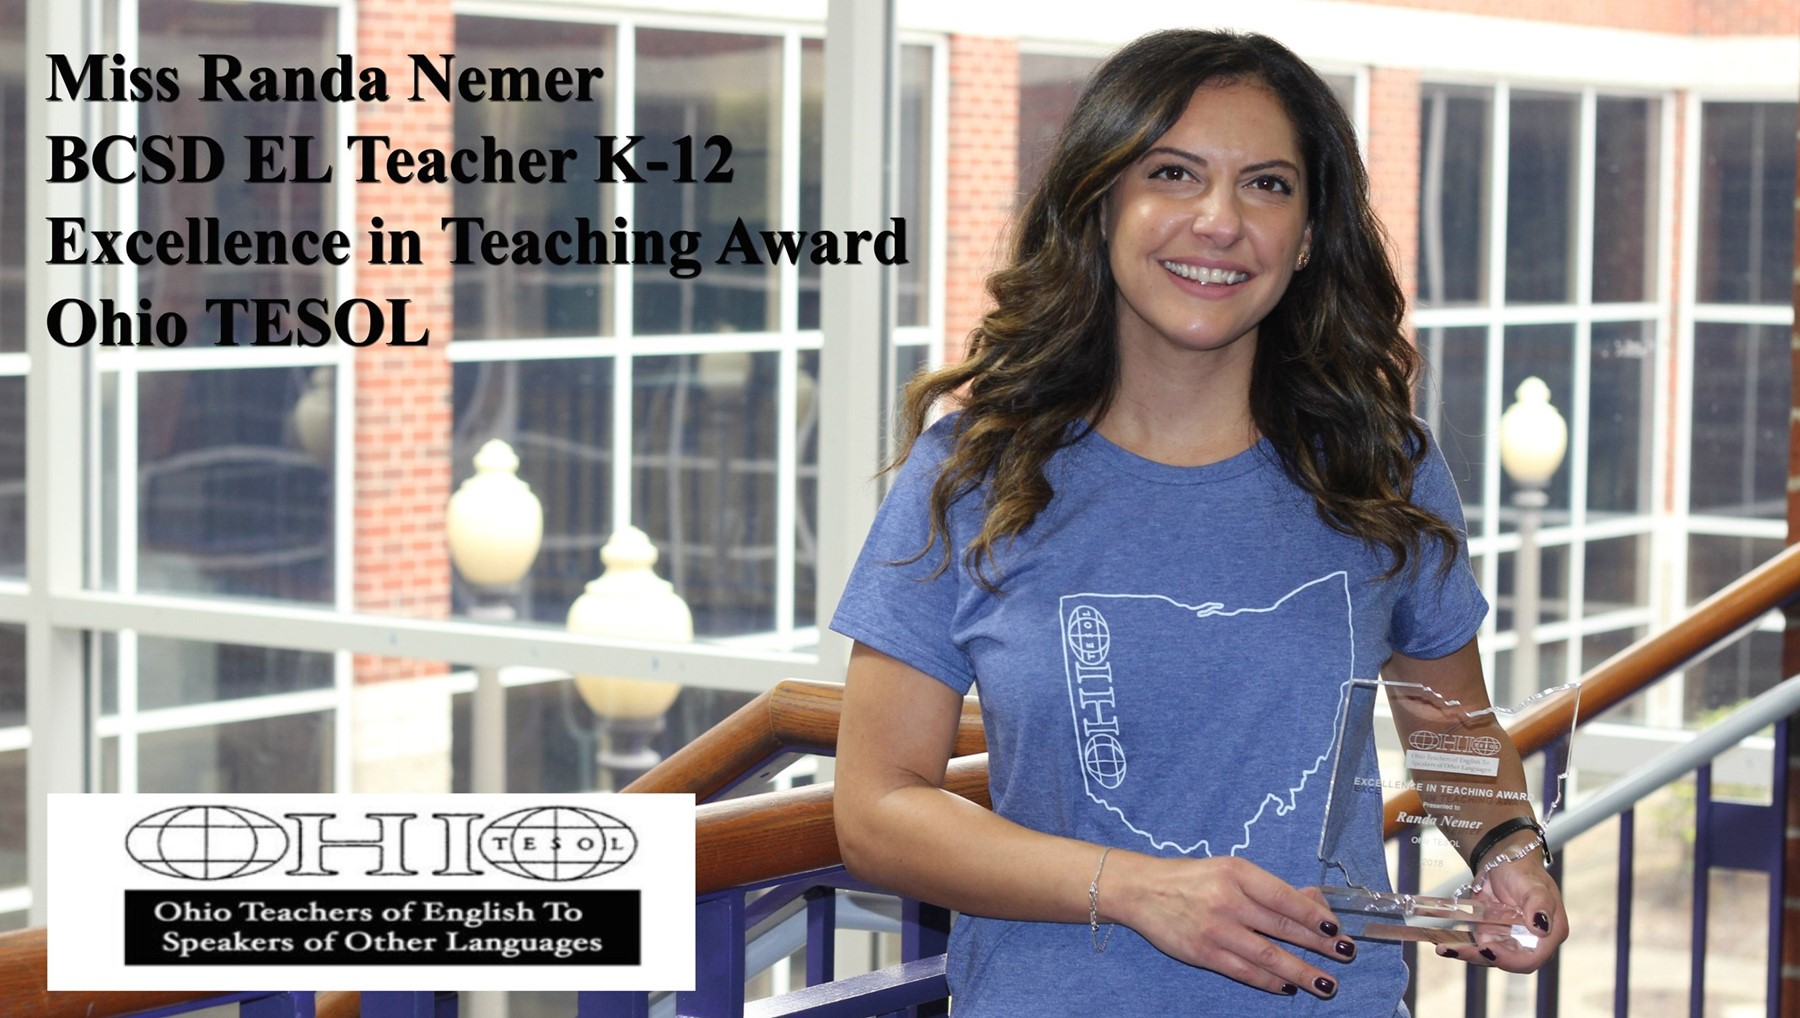 Miss Randa Nemer, EL Teacher K-12, who was recently awarded the Excellence in Teaching Award at the Ohio TESOL Conference in Columbus.